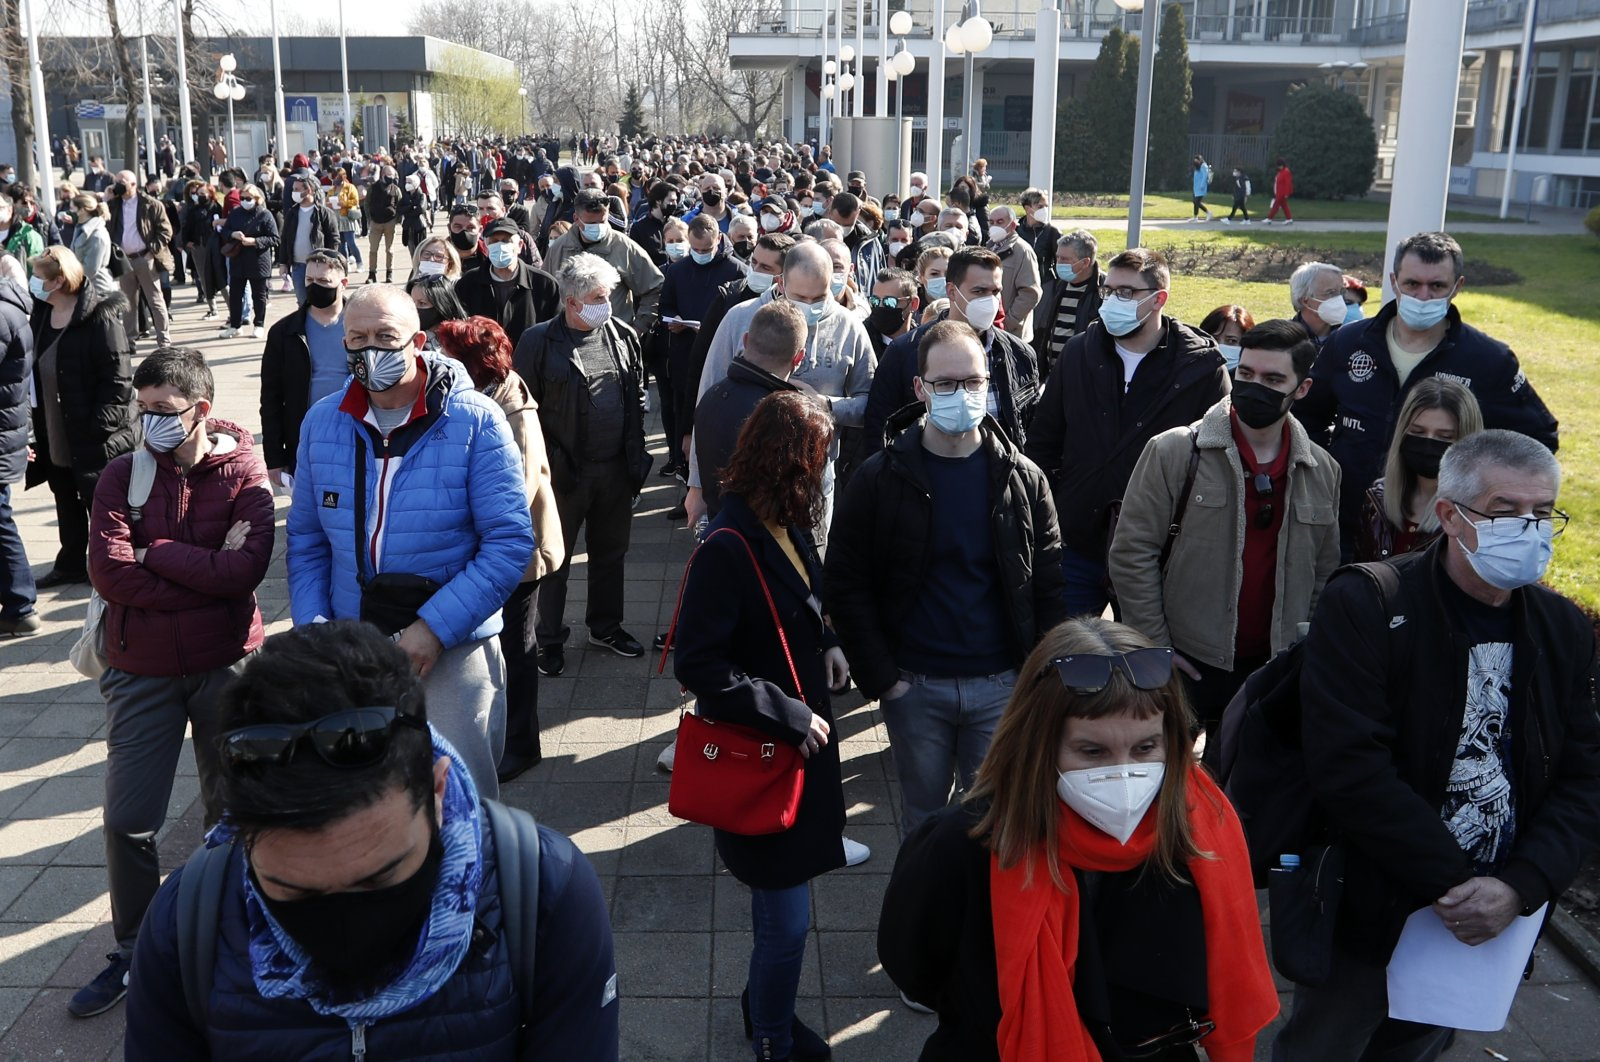 People wait in line to receive a dose of the AstraZeneca vaccine at the Belgrade Fair makeshift vaccination center in Belgrade, Serbia, March 27, 2021. (AP Photo)